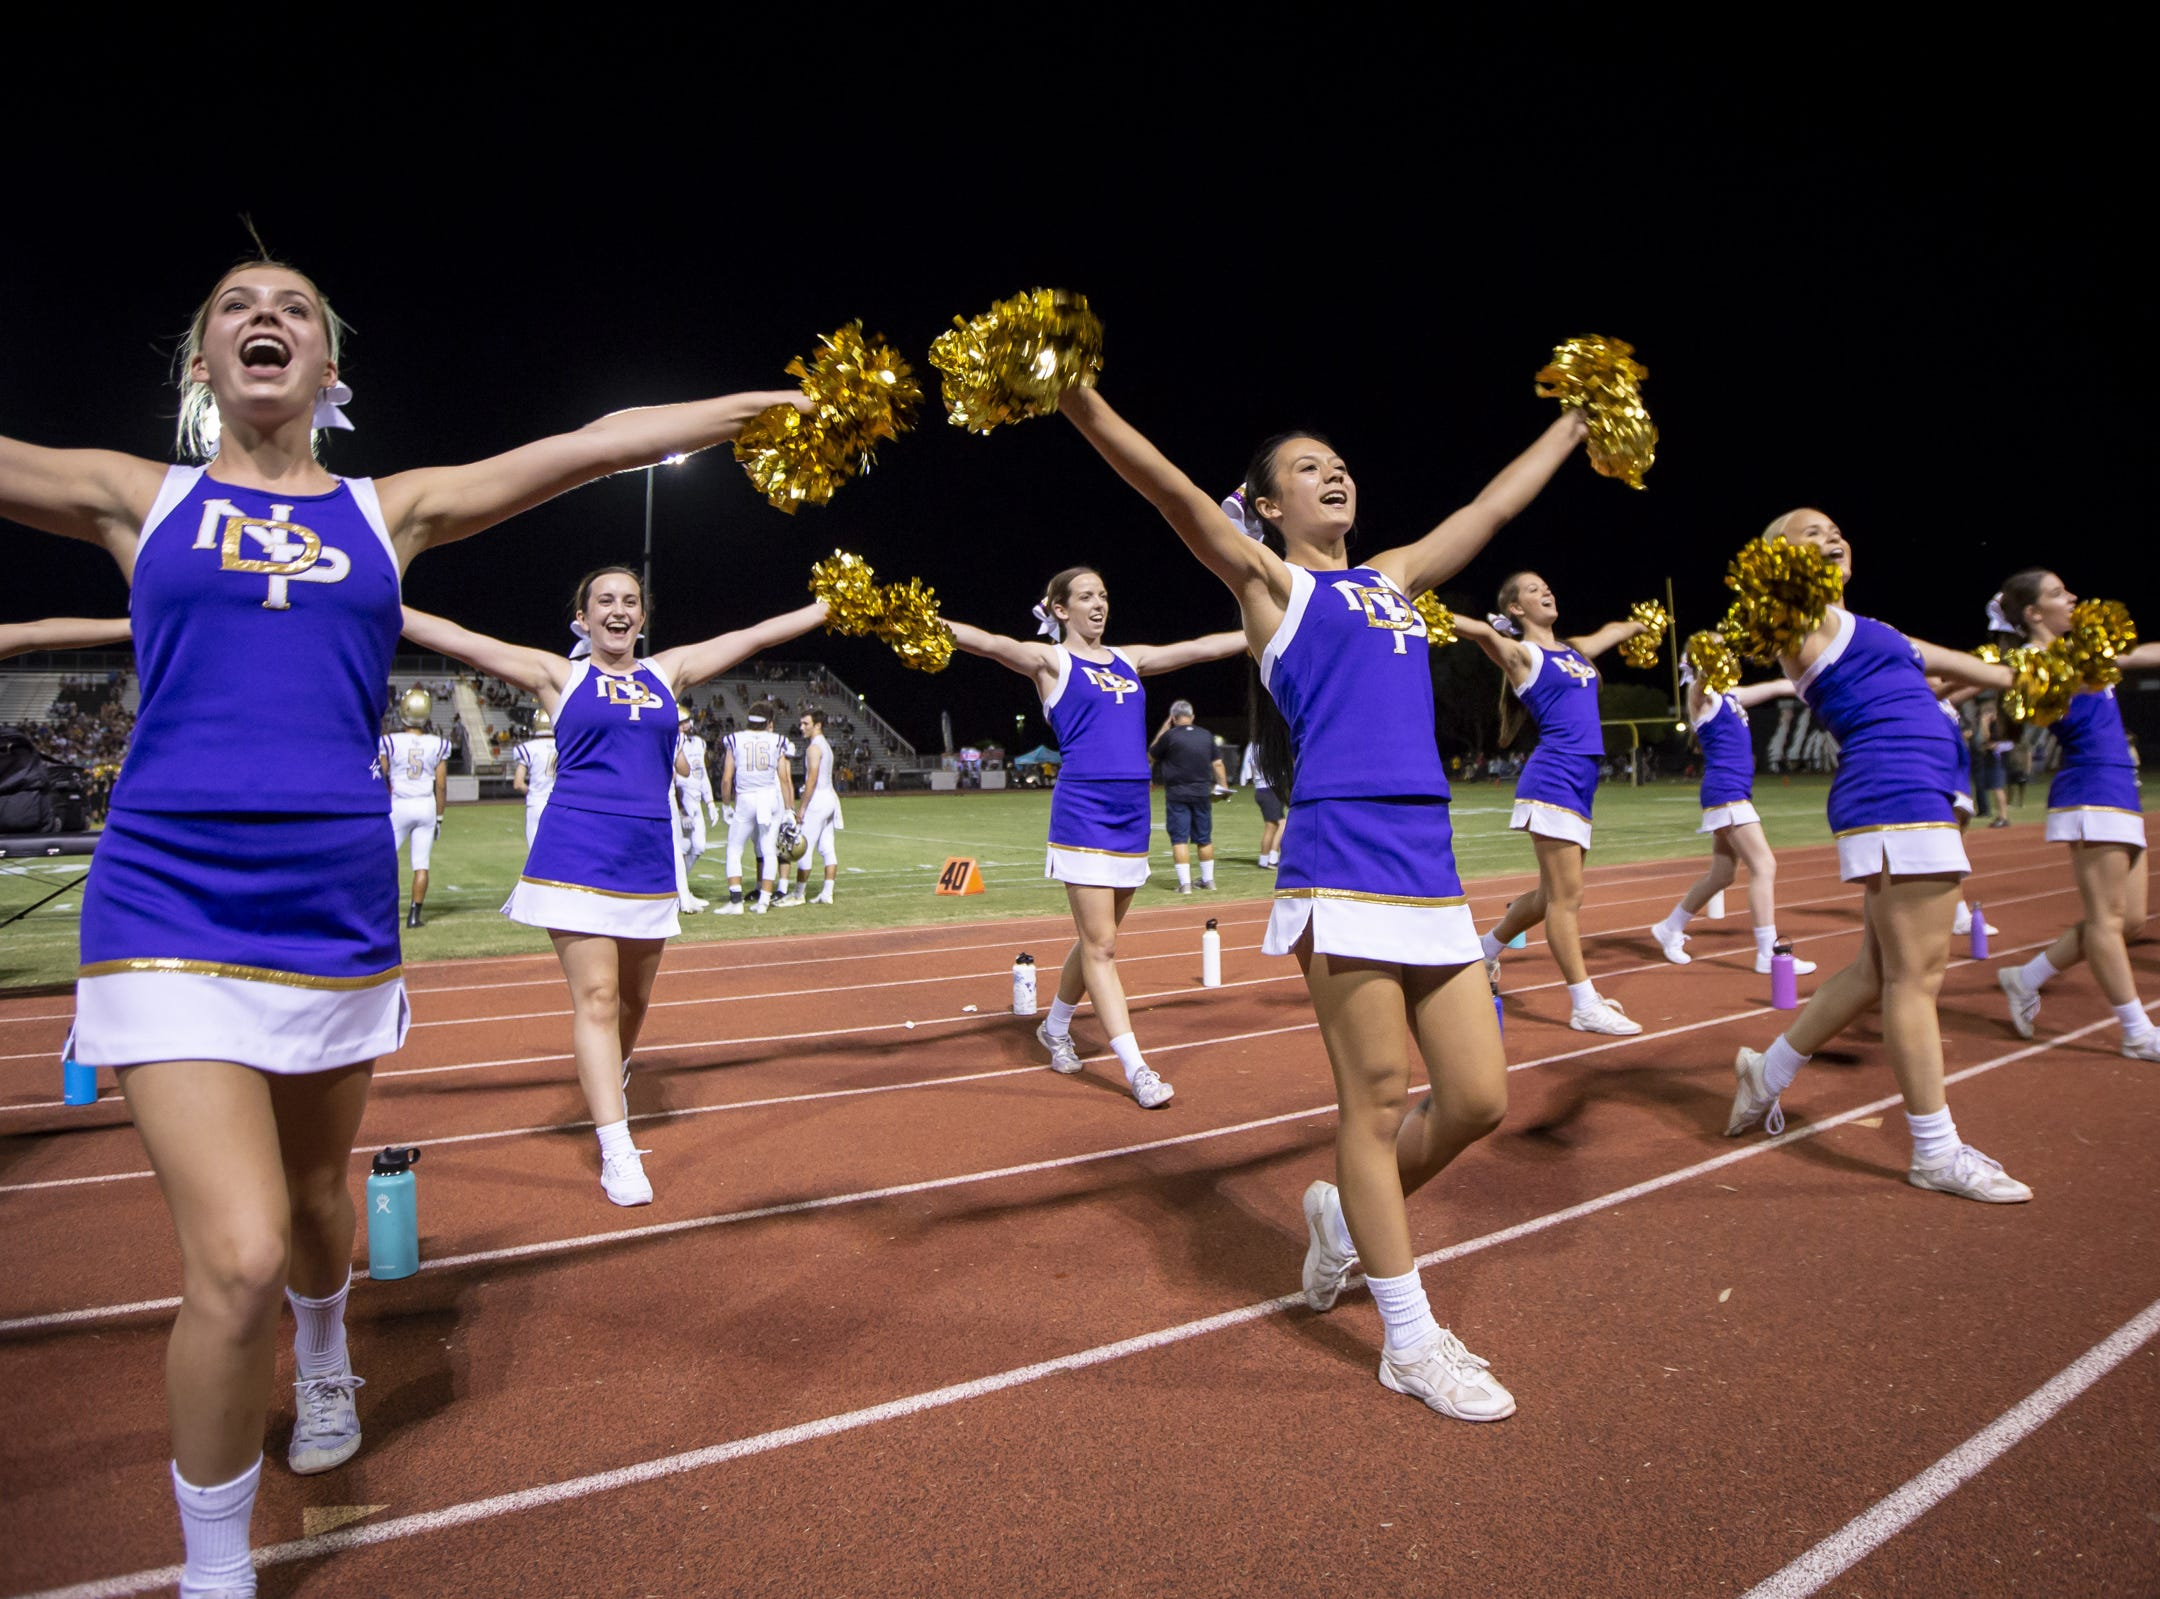 Notre Dame Prep cheerleaders cheer during the game against the Gilbert Tigers at Gilbert High School on Friday, August 31, 2018 in Gilbert, Arizona.